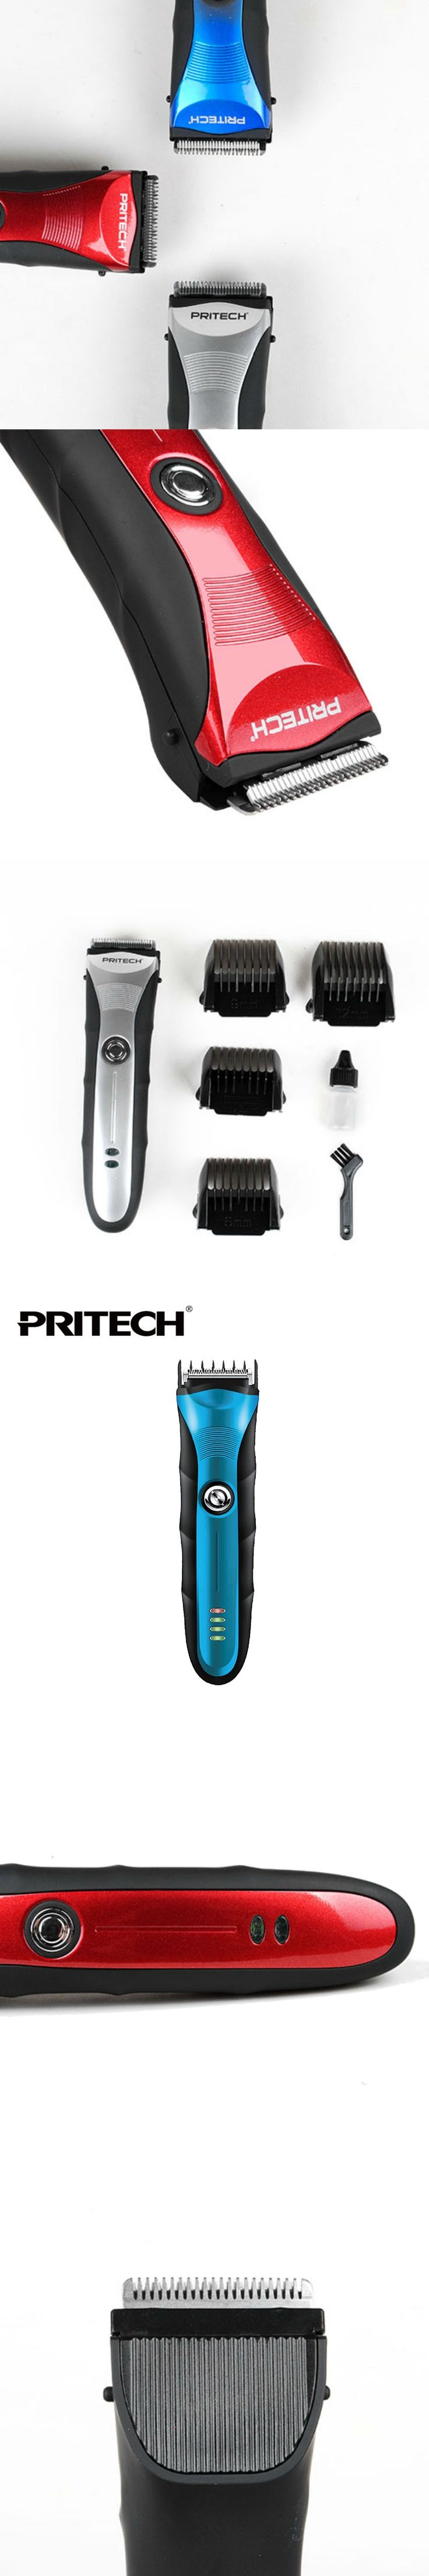 PRITECH Professional Hair Clippers And Trimmers Adult Hair Trimmer Beard Shaver Rechargeable Hair Cutting Machine For Family Use